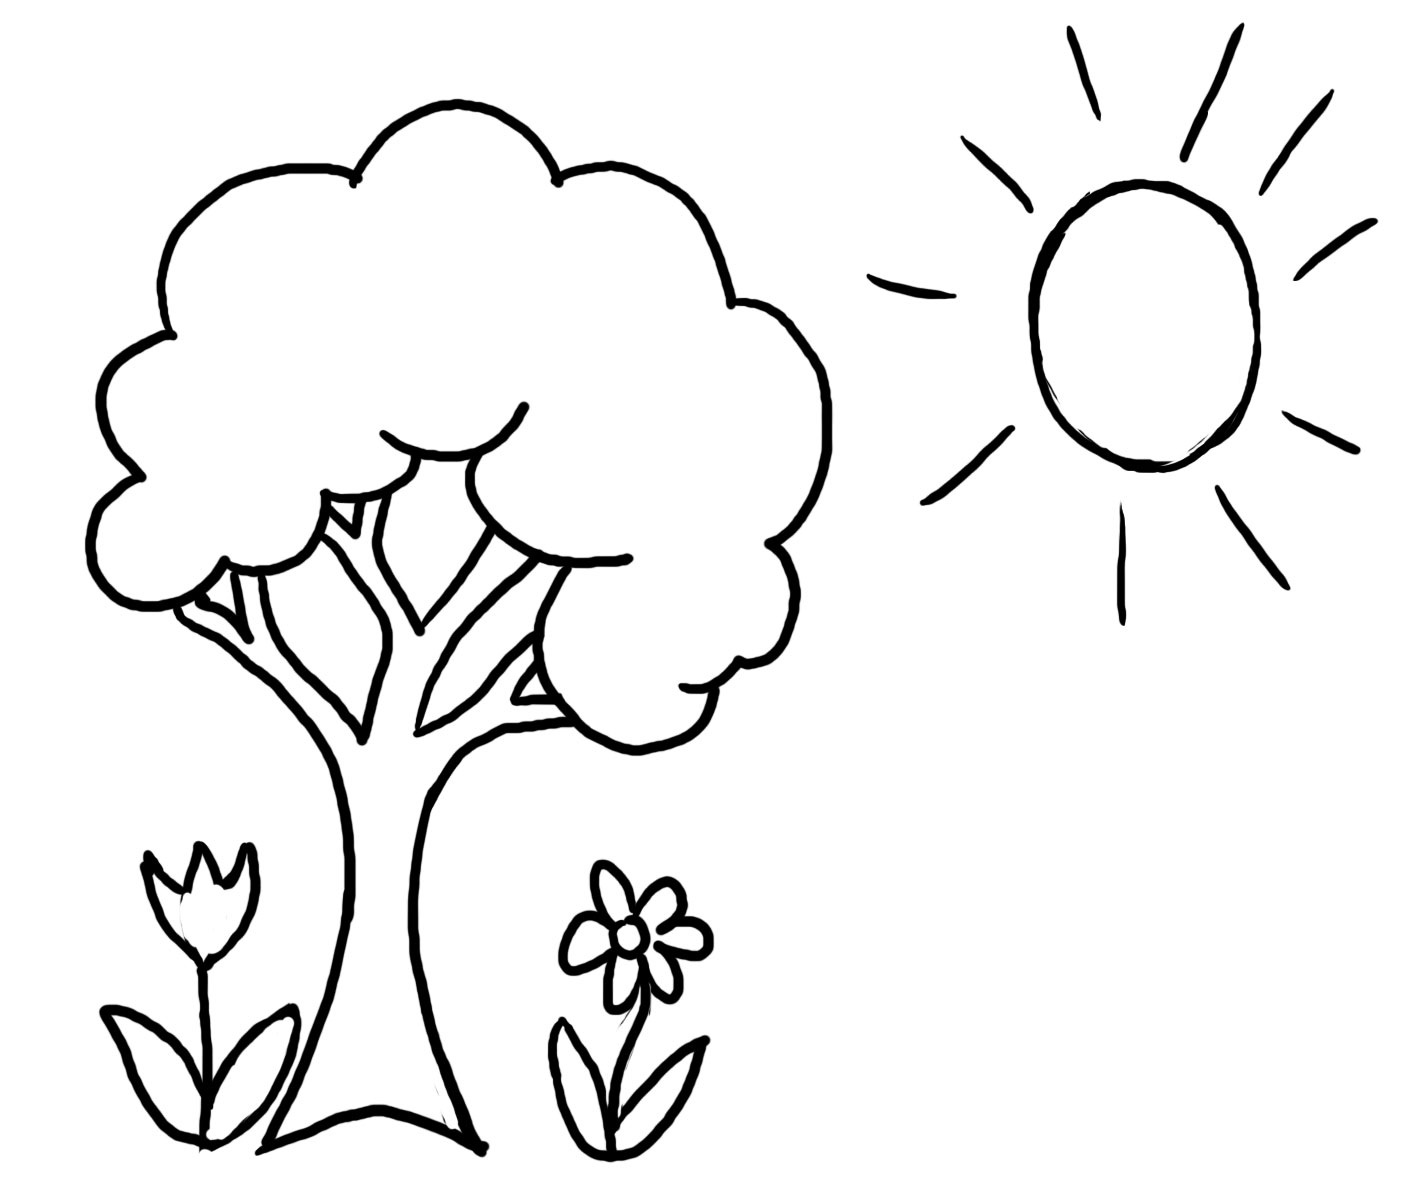 Preschool Coloring Pages 3 Coloring Kids Coloring Pages For Preschoolers